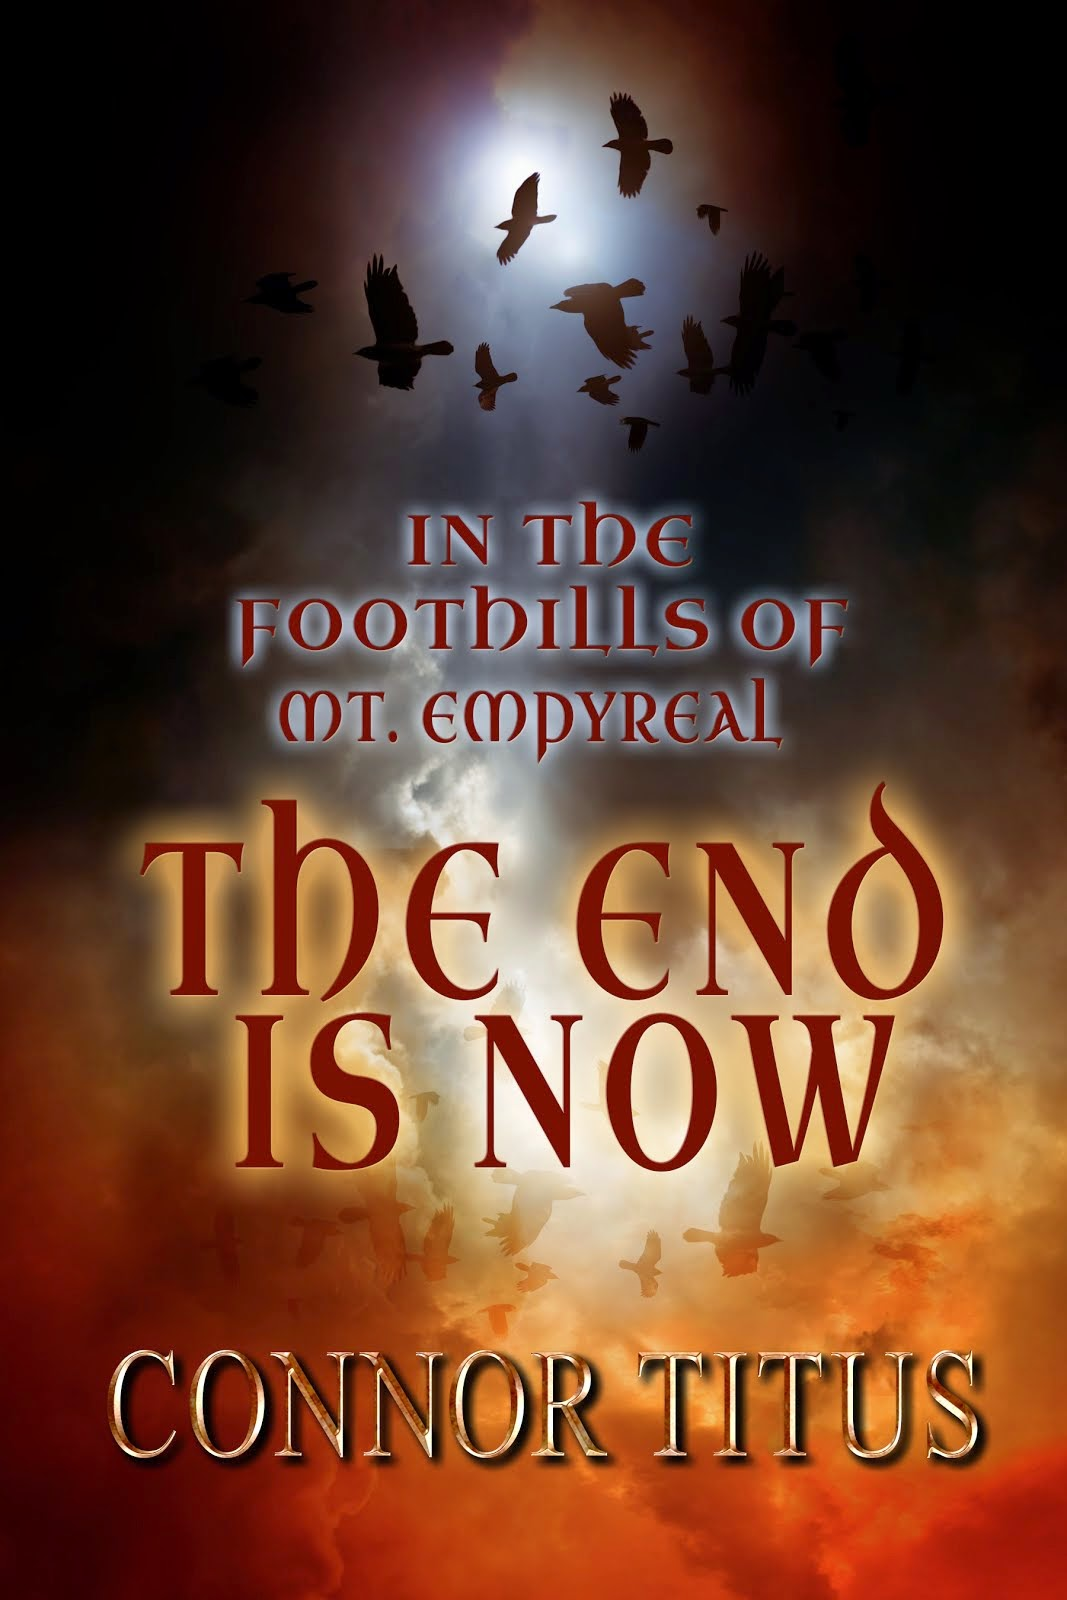 Click here to purchase: The End is Now!